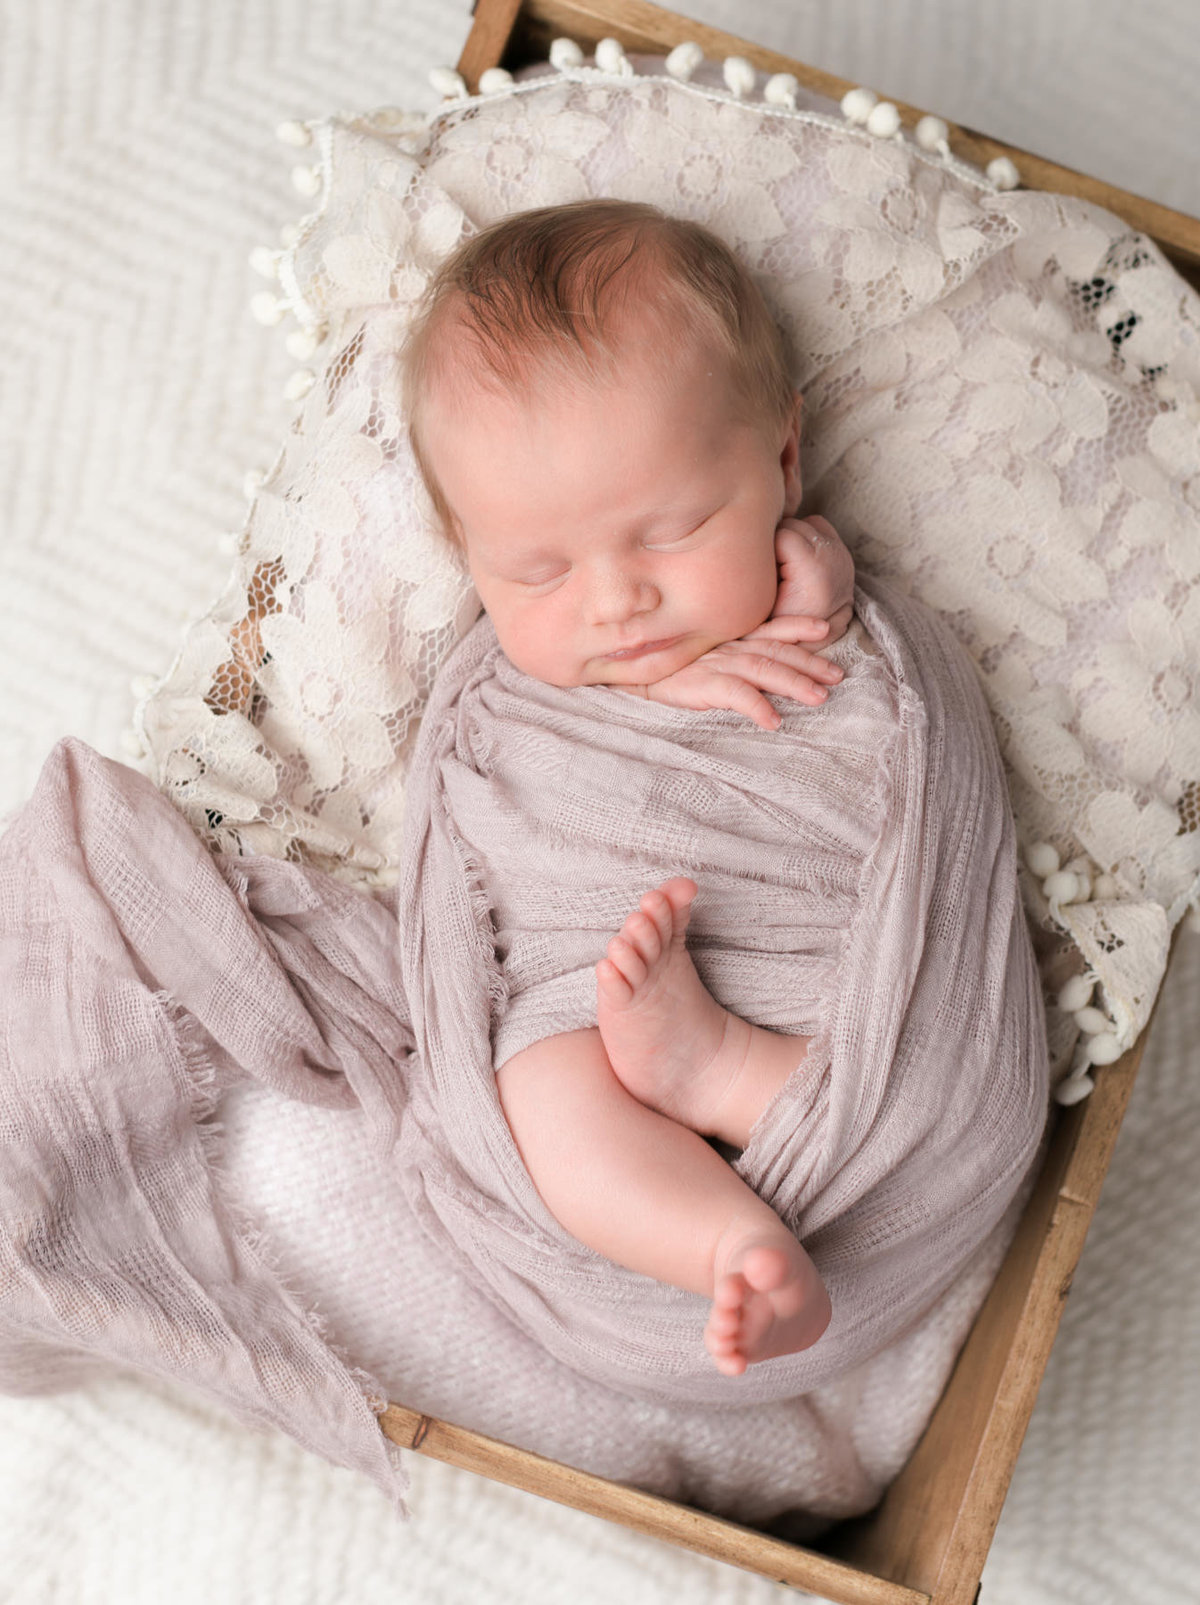 newborn-photographer-tayler-enerle-paso-robles00015